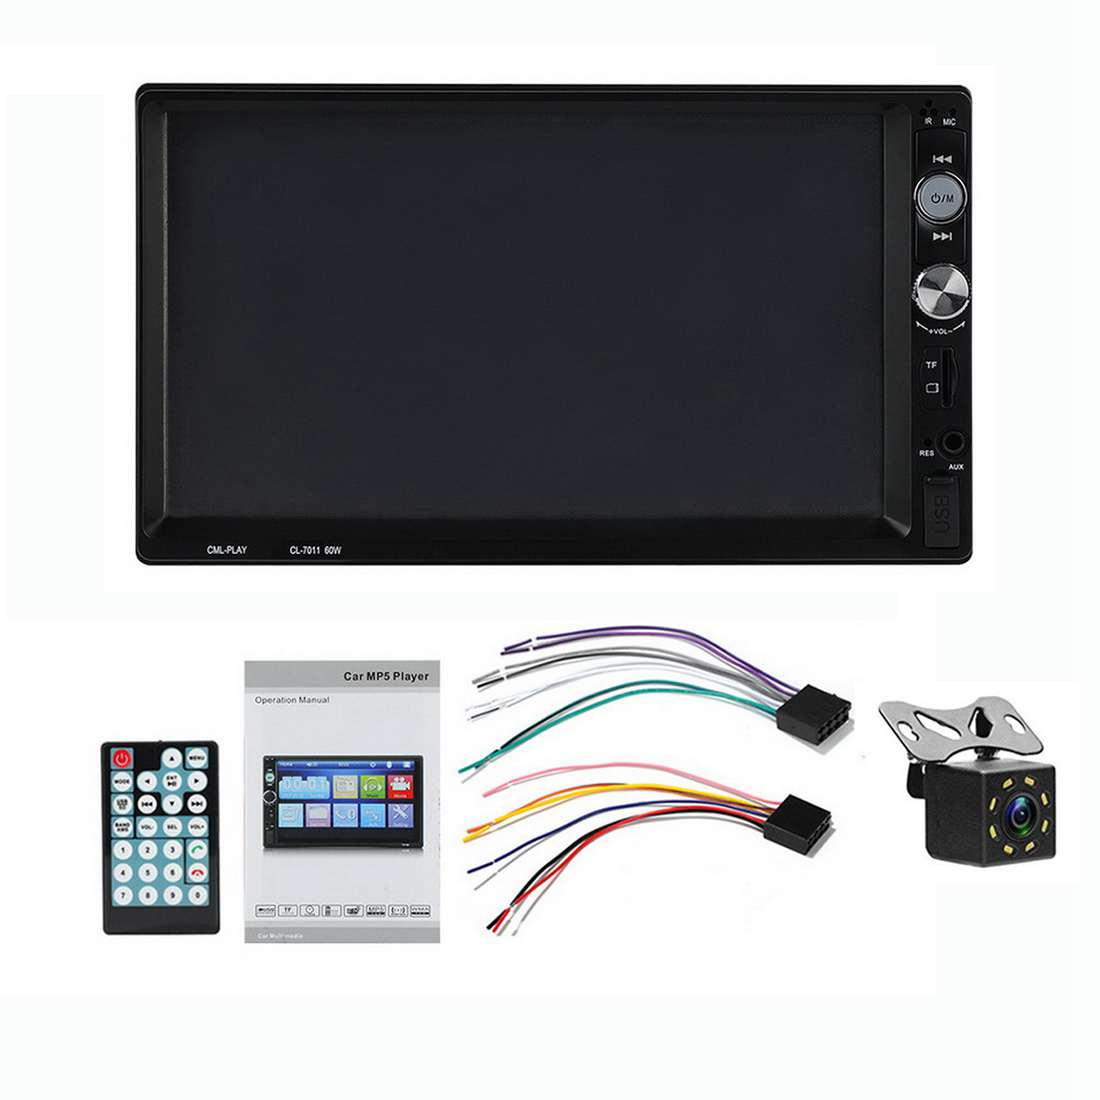 NEW-Newest 7 Inch Lcd Autoradio CL-7011 2 Din Car Mp5 Player With Mirroring Android Bluetooth Multimedia Car Radio Stereo FMNEW-Newest 7 Inch Lcd Autoradio CL-7011 2 Din Car Mp5 Player With Mirroring Android Bluetooth Multimedia Car Radio Stereo FM